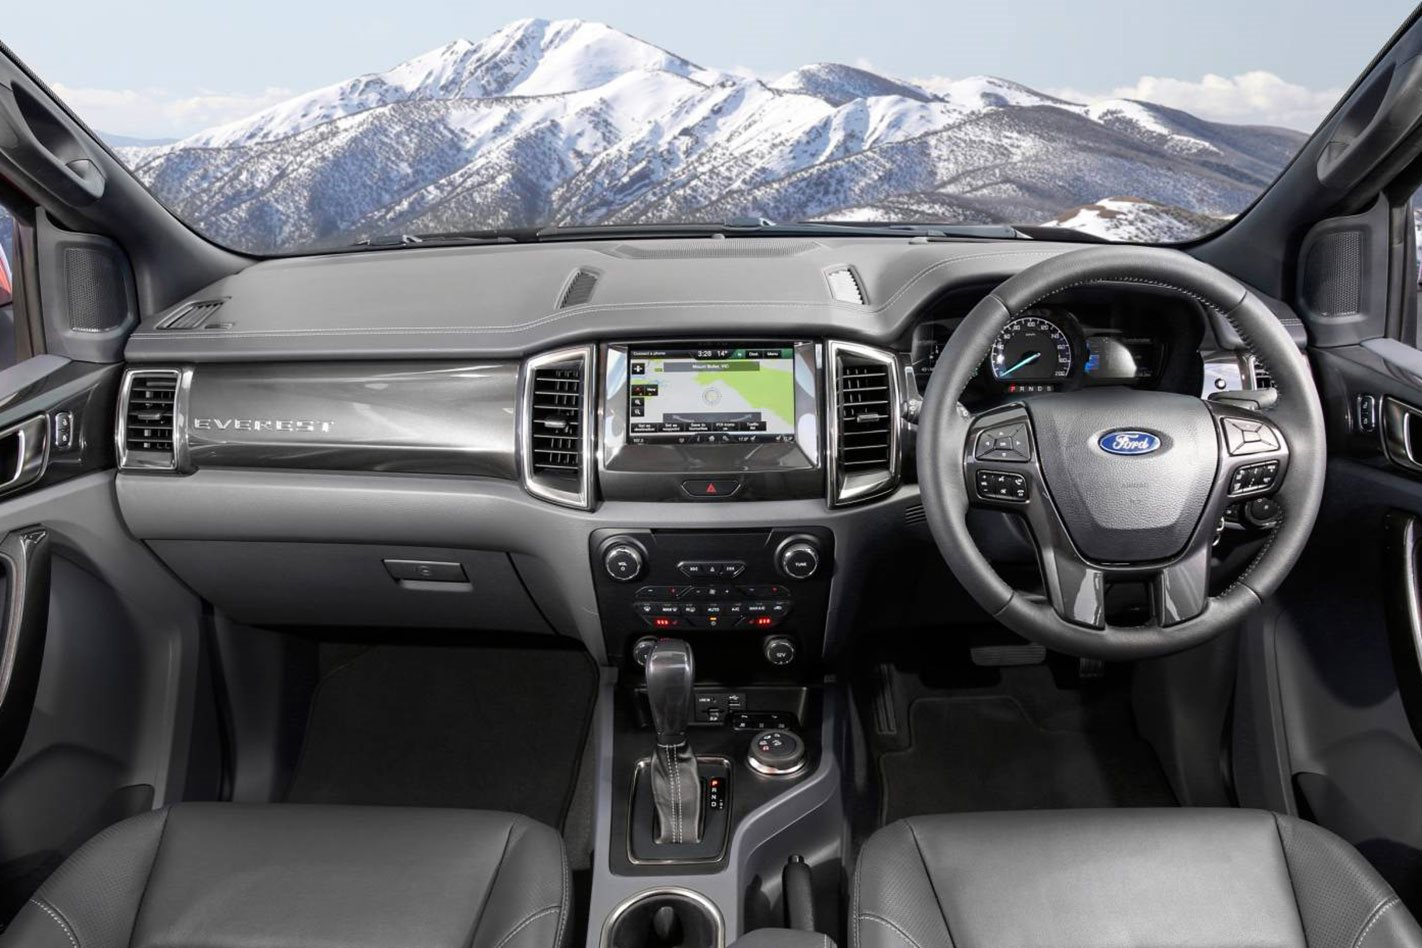 2015 ford everest reviews - 2015 Ford Everest Reviews 3